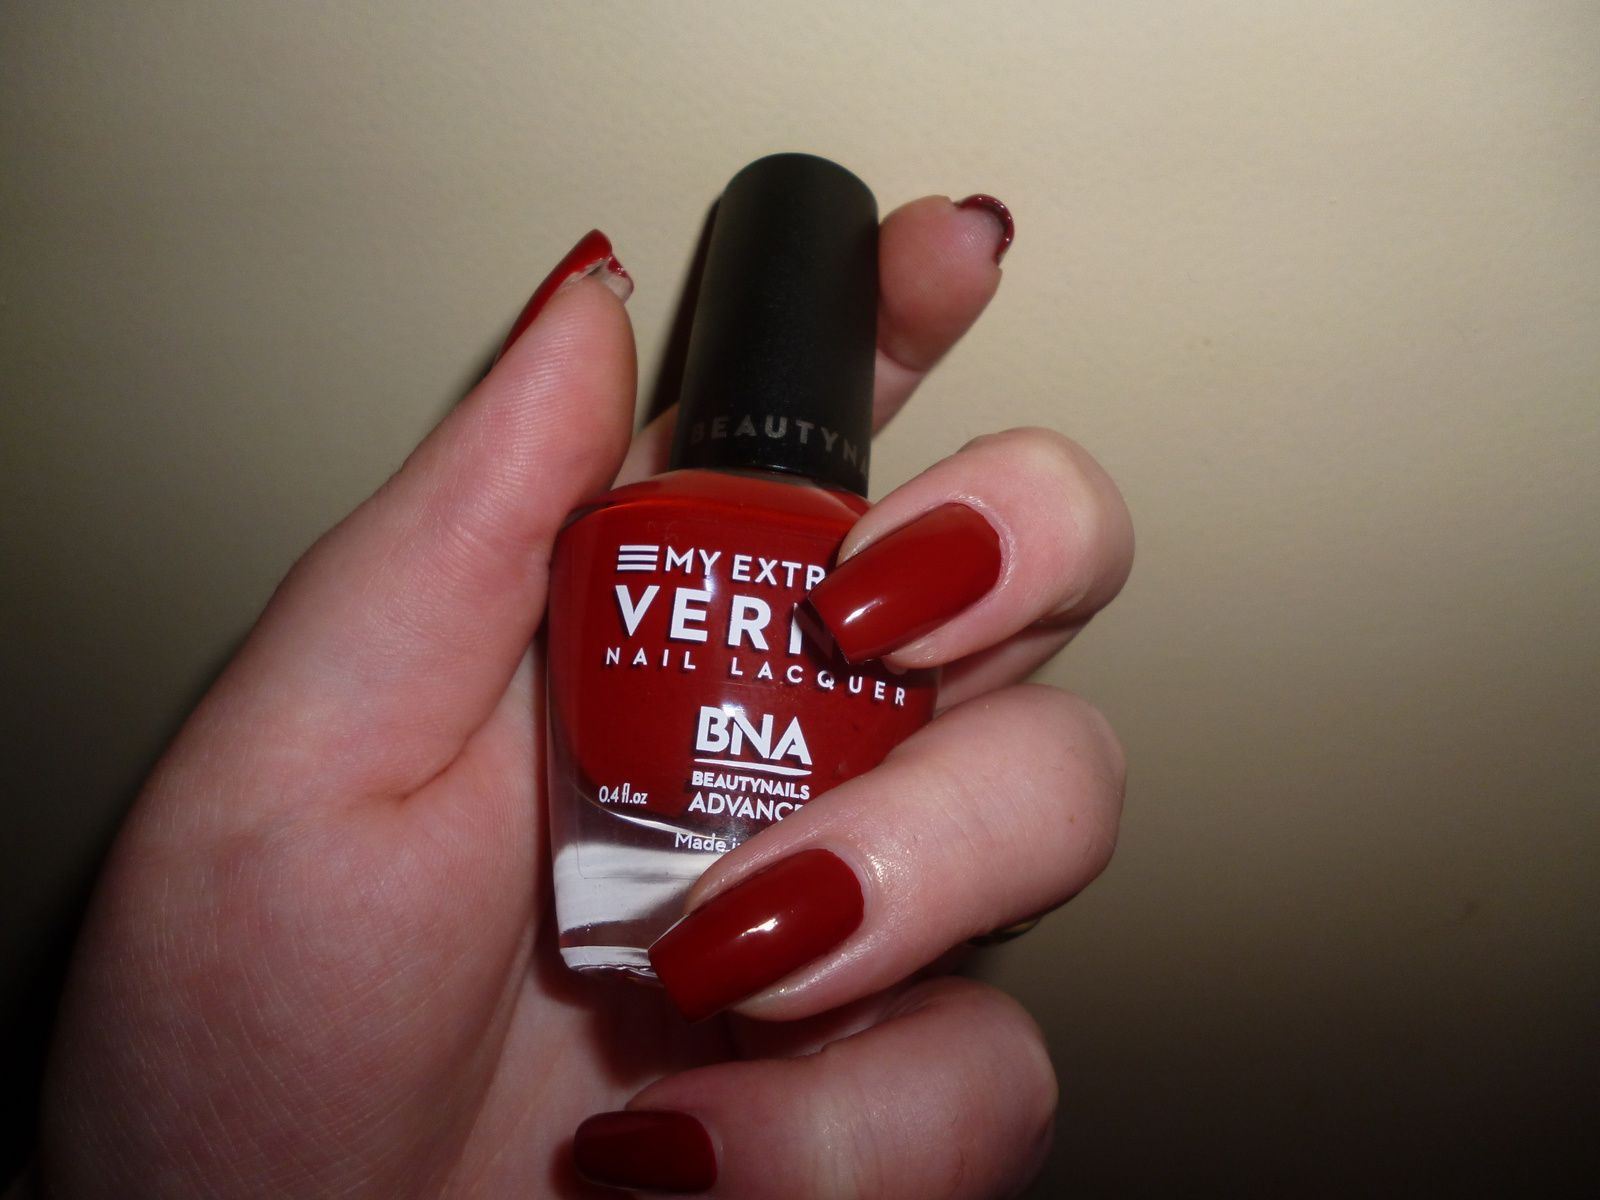 MY EXTREM VERNIS INDI RED  - Beautynails